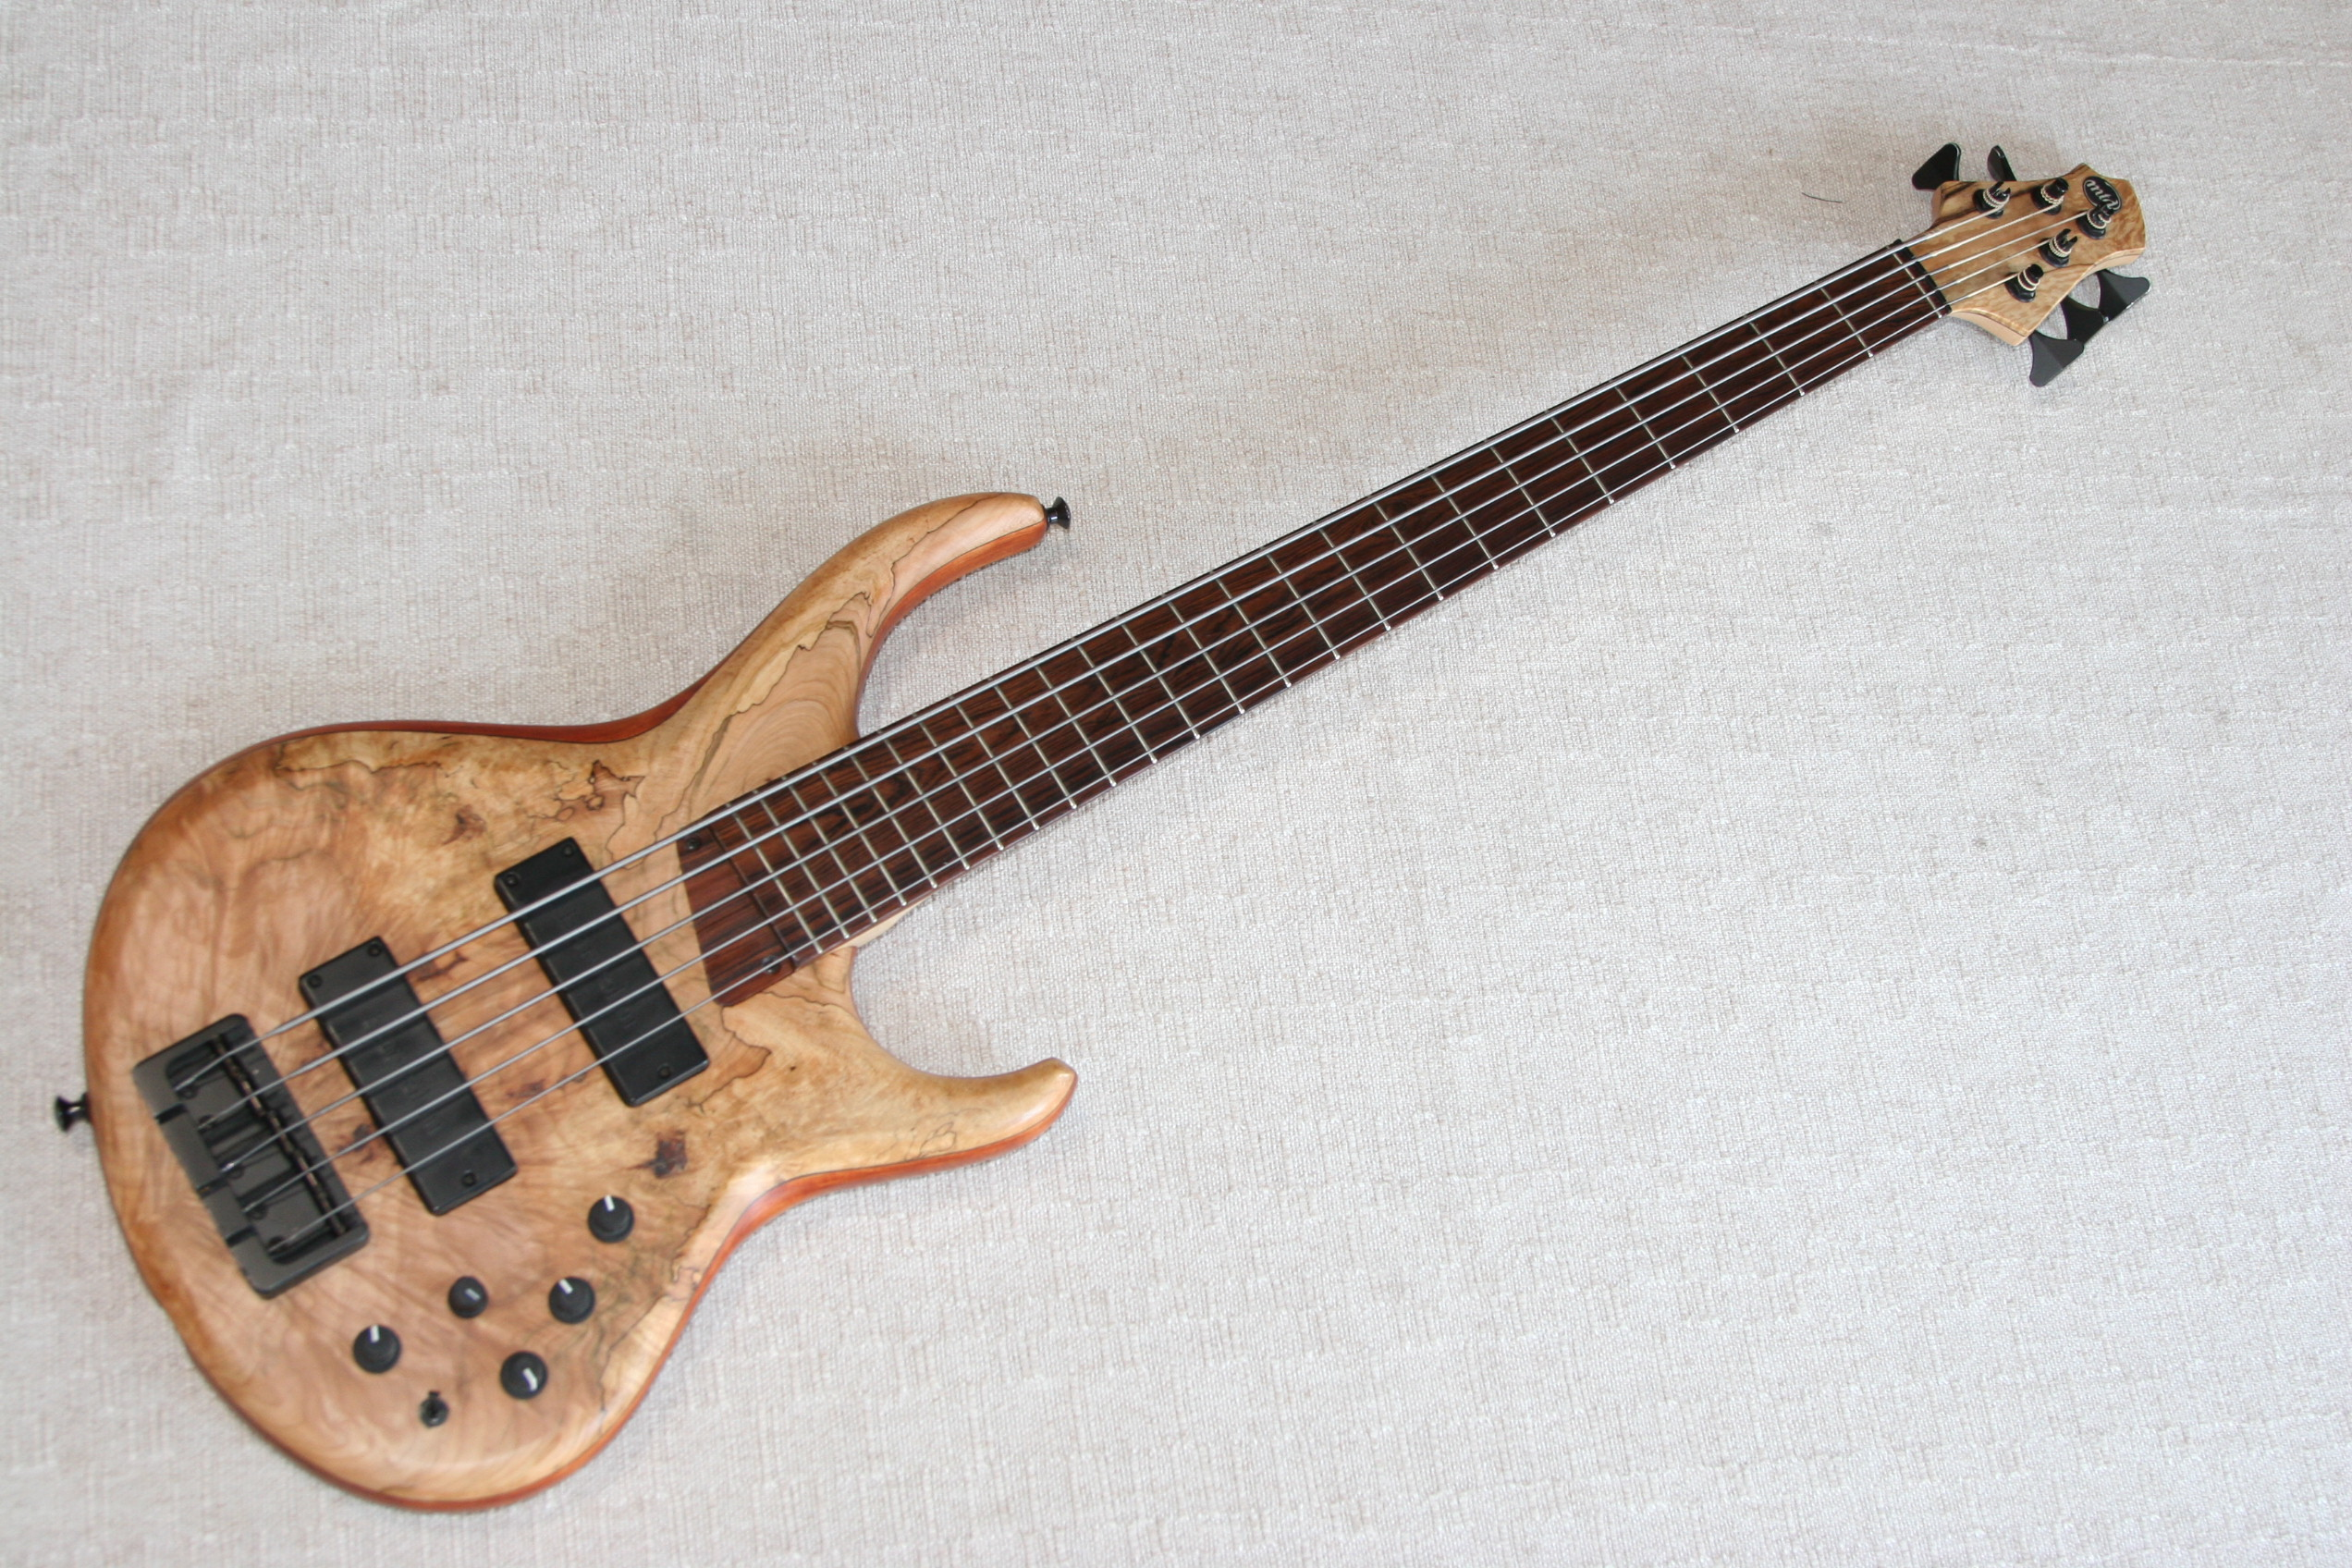 MTD 535-24 5 string bass Michael Tobias Design